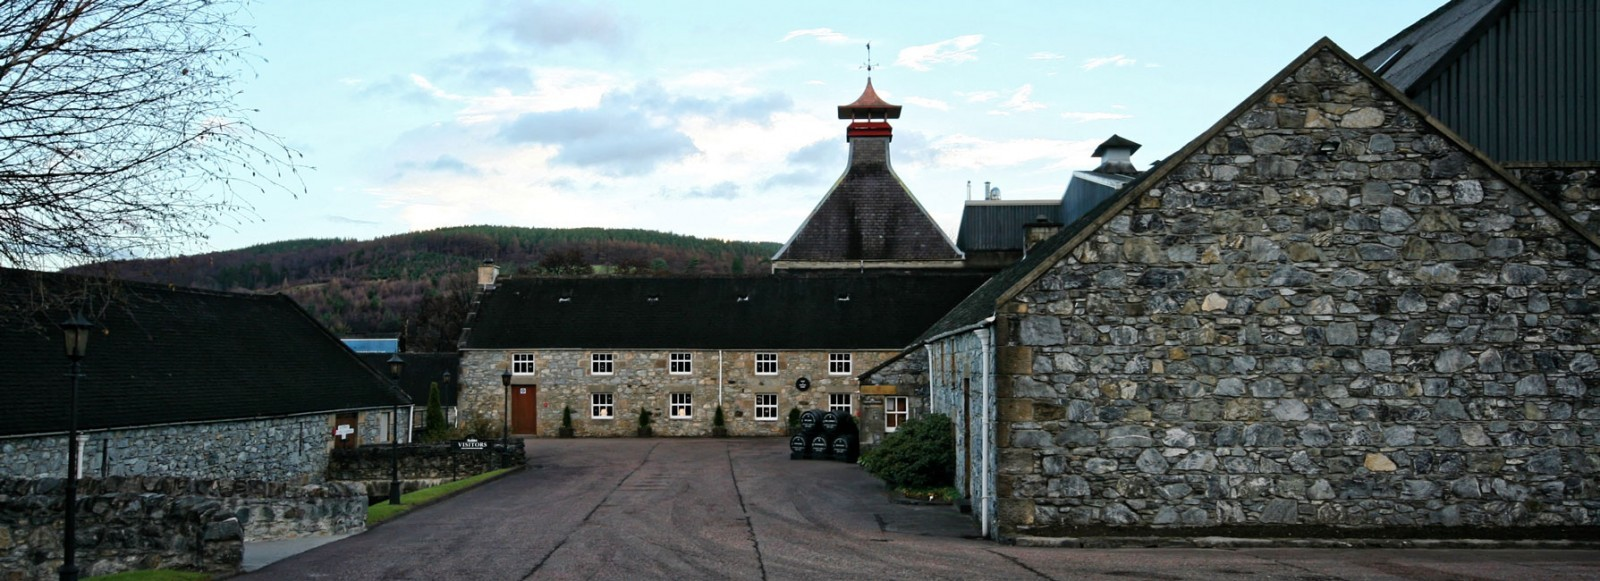 Glenfiddich Besucherzentrum